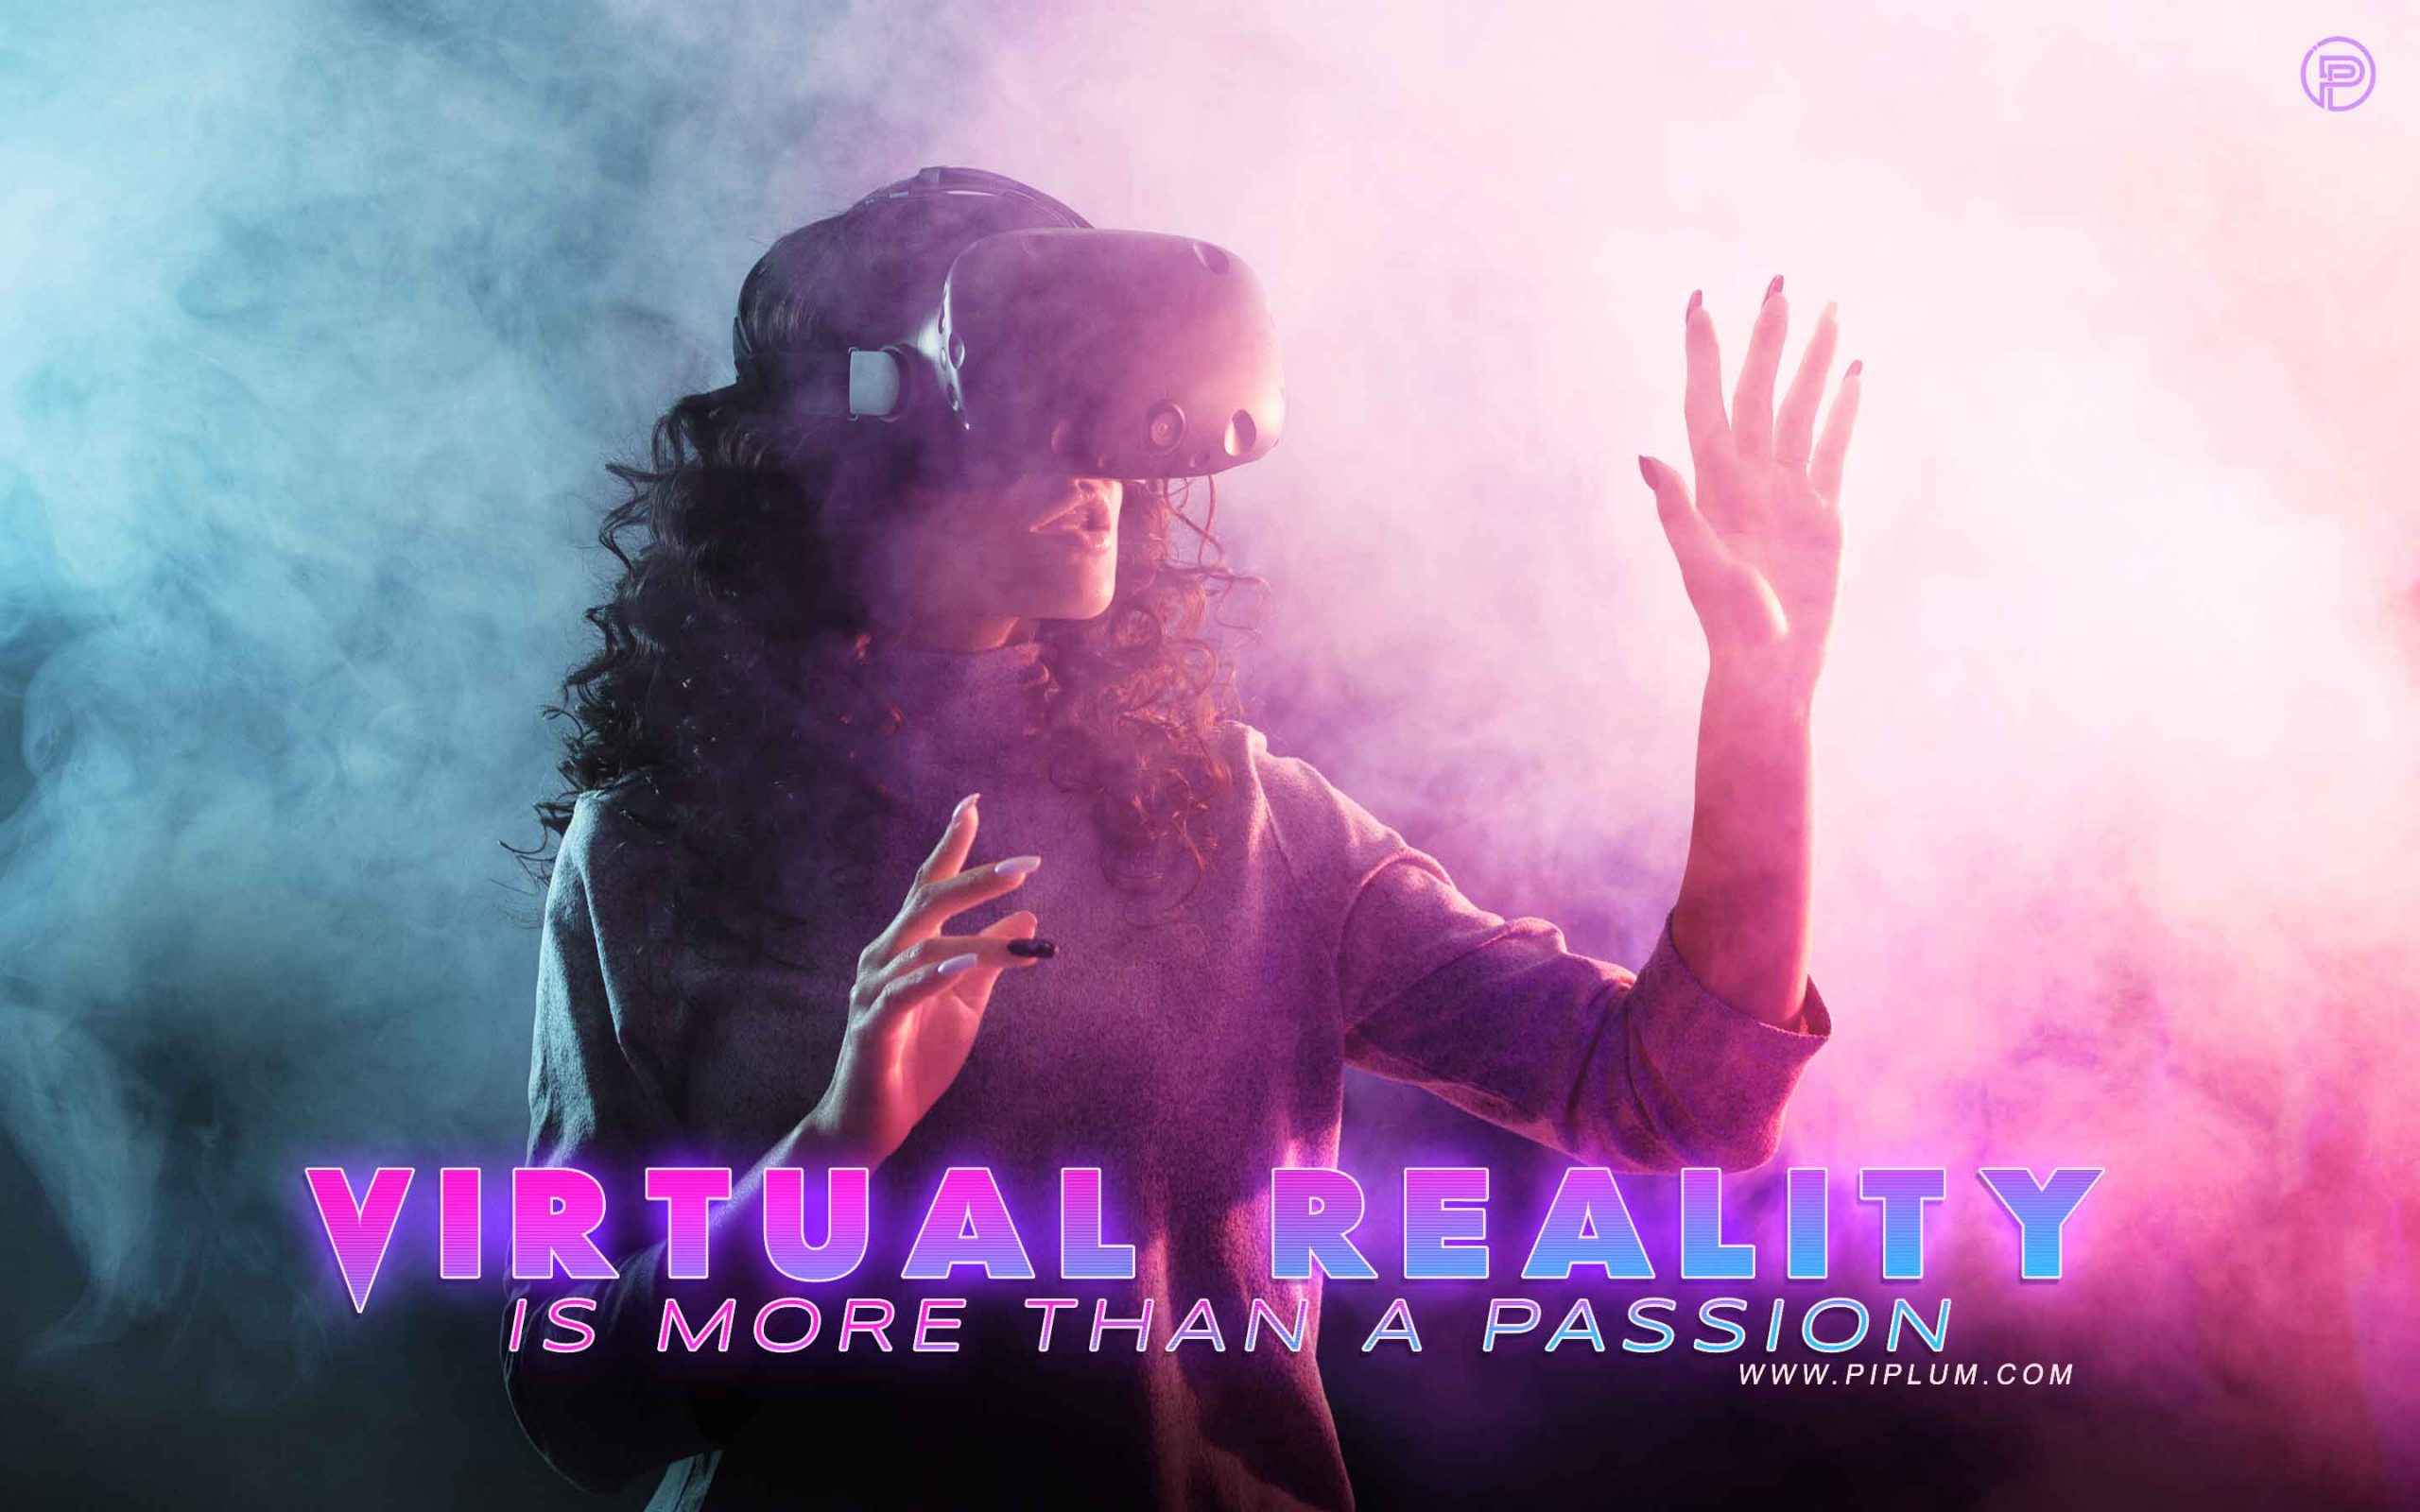 Virtual reality is more than a passion... Inspirational gaming quote.